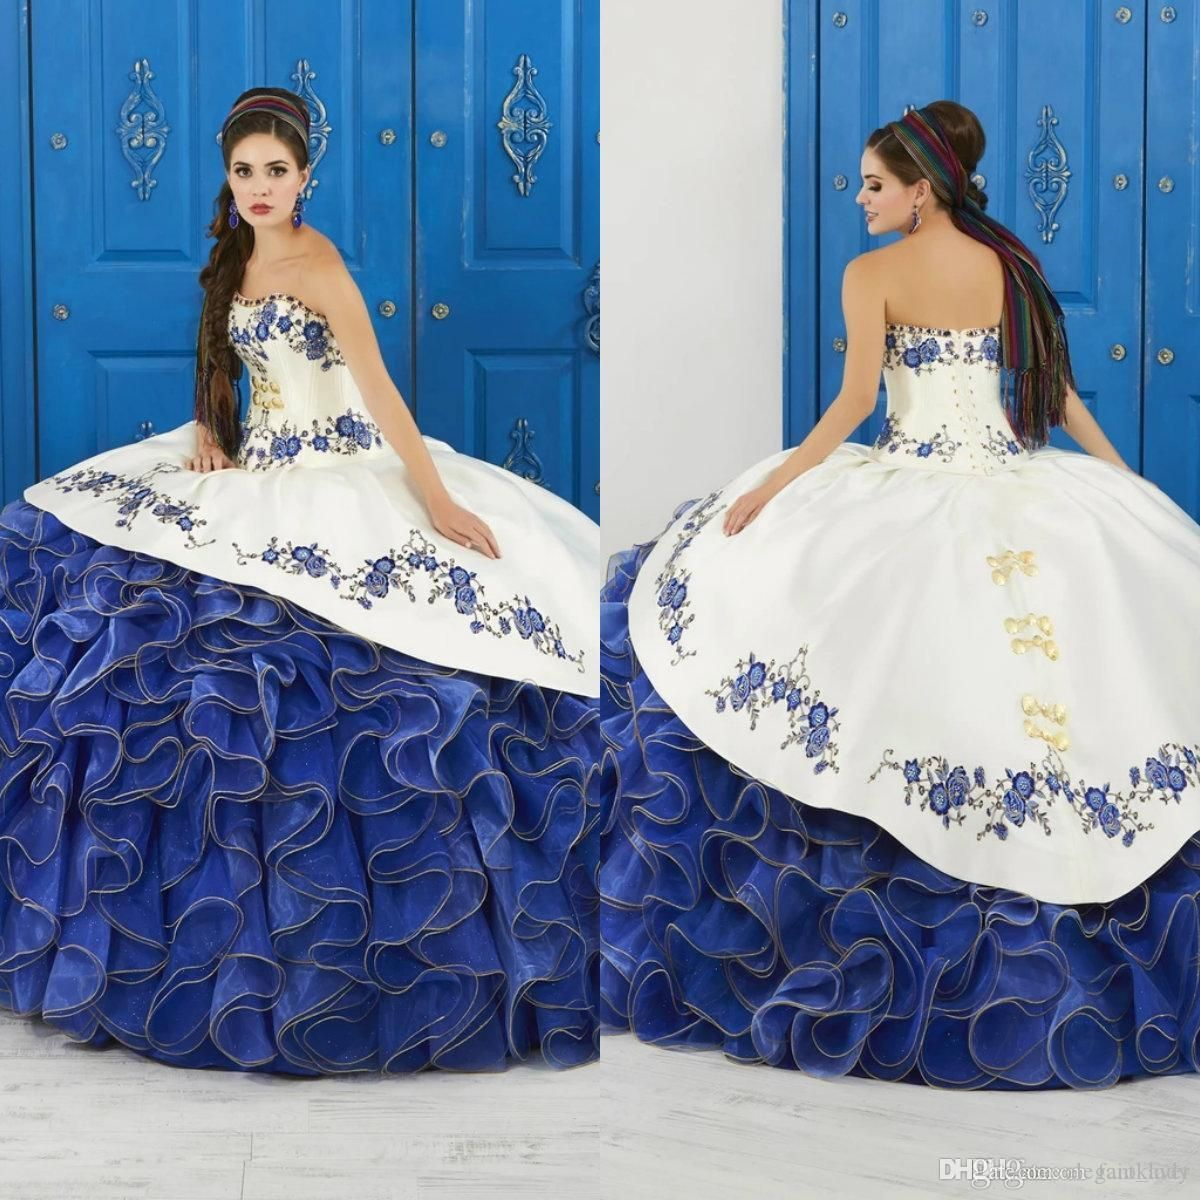 Ruffled Floral Charro Quinceanera Dresses 2020 Strapless Puffy Skirt Lace Embroidery Princess Sweety 16 Girls Masquerade Prom Dress Beads Flower Girls Dress Masquerade Ball Gown Quinceanera Dress Online with $249.11/Piece on Alegant_lady's Store #masqueradeballgowns Ruffled Floral Charro Quinceanera Dresses 2020 Strapless Puffy Skirt Lace Embroidery Princess Sweety 16 Girls Masquerade Prom Dress Beads Flower Girls Dress Masquerade Ball Gown Quinceanera Dress Online with $249.11/Piece on Alegant_ #masqueradeballgowns